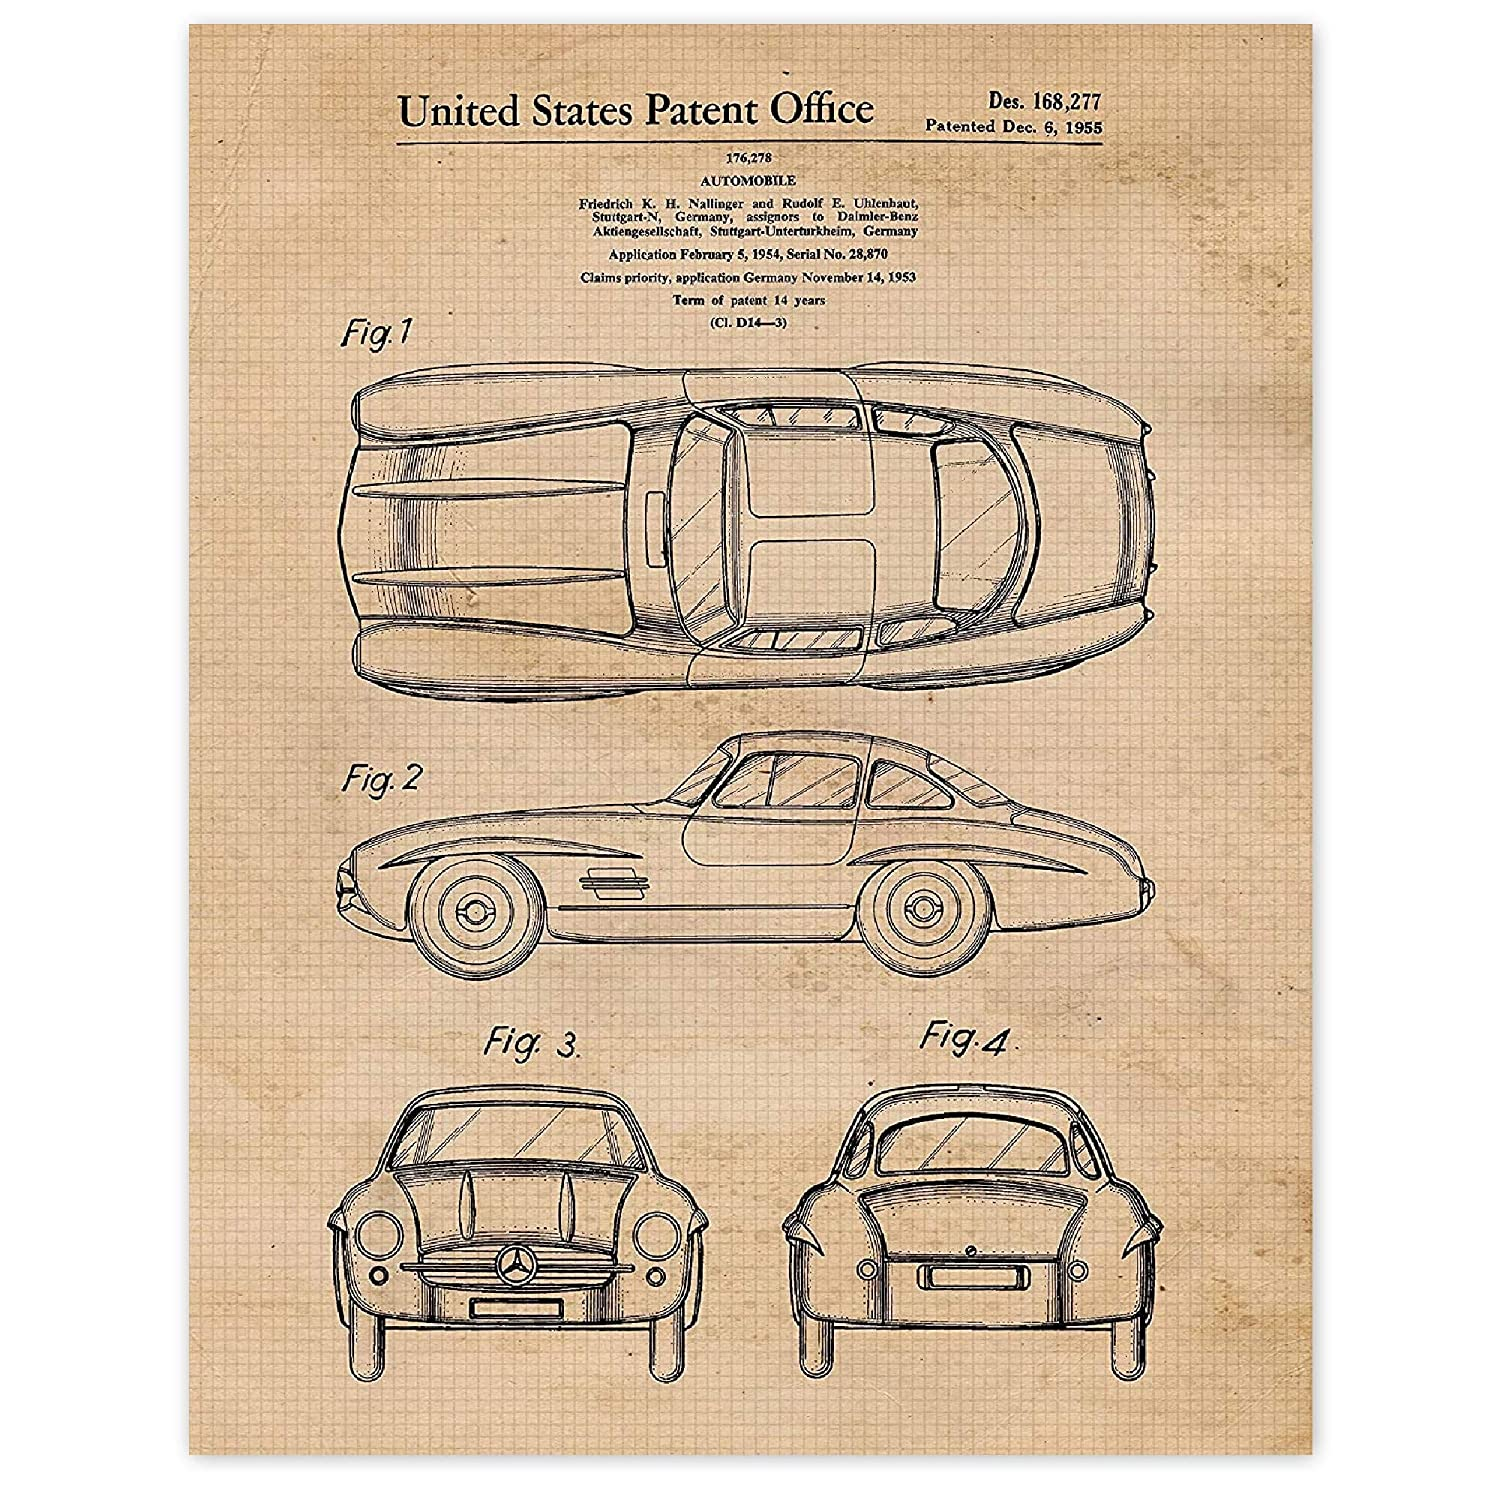 Vintage Mercedes Benz 300SL Gullwing Patent Poster Prints, Set of 1 (11x14) Unframed Photo, Wall Decor Gifts Under 15 for Home, Office, Garage, Man Cave, College Student, Teacher, Cars & Coffee Fan